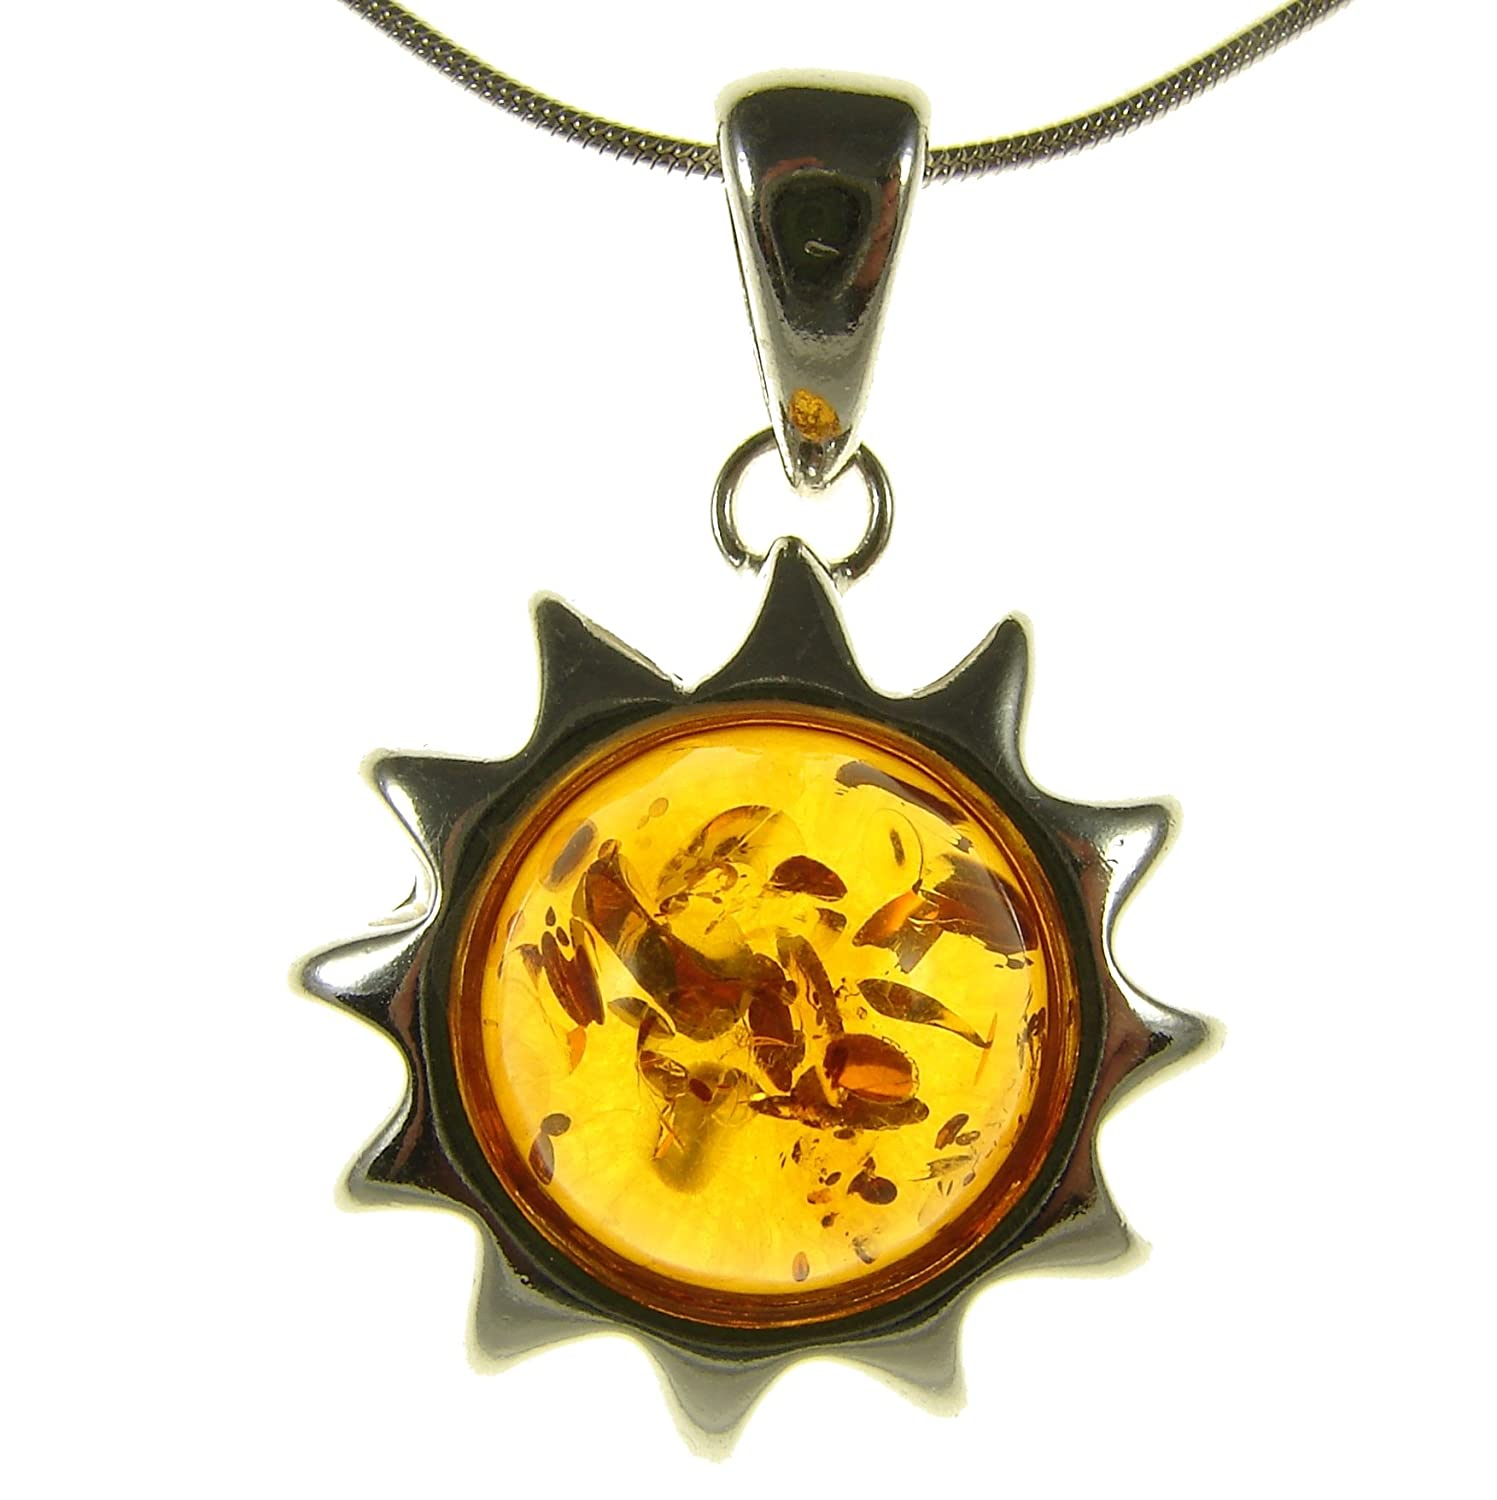 14 16 18 20 22 24 26 28 30 32 34 1mm ITALIAN SNAKE CHAIN BALTIC AMBER AND STERLING SILVER 925 MOUSE PENDANT NECKLACE